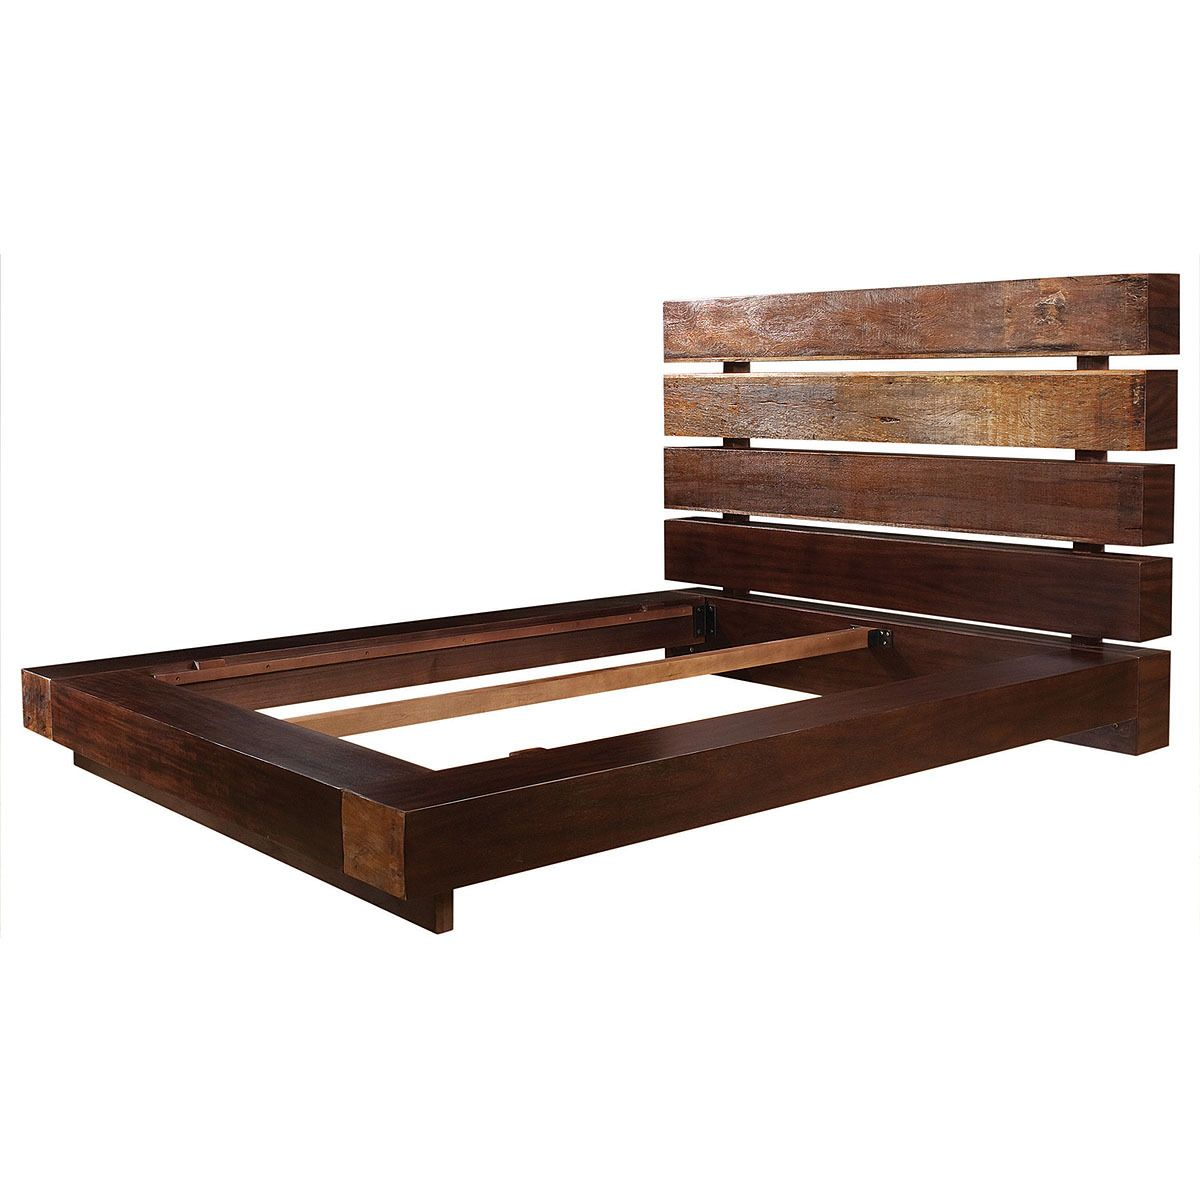 buy iggy queen bed at zin home reclaimed wood beam platform beds our eclectic iggy queen platform bed frame is handcrafted from exotic demolition